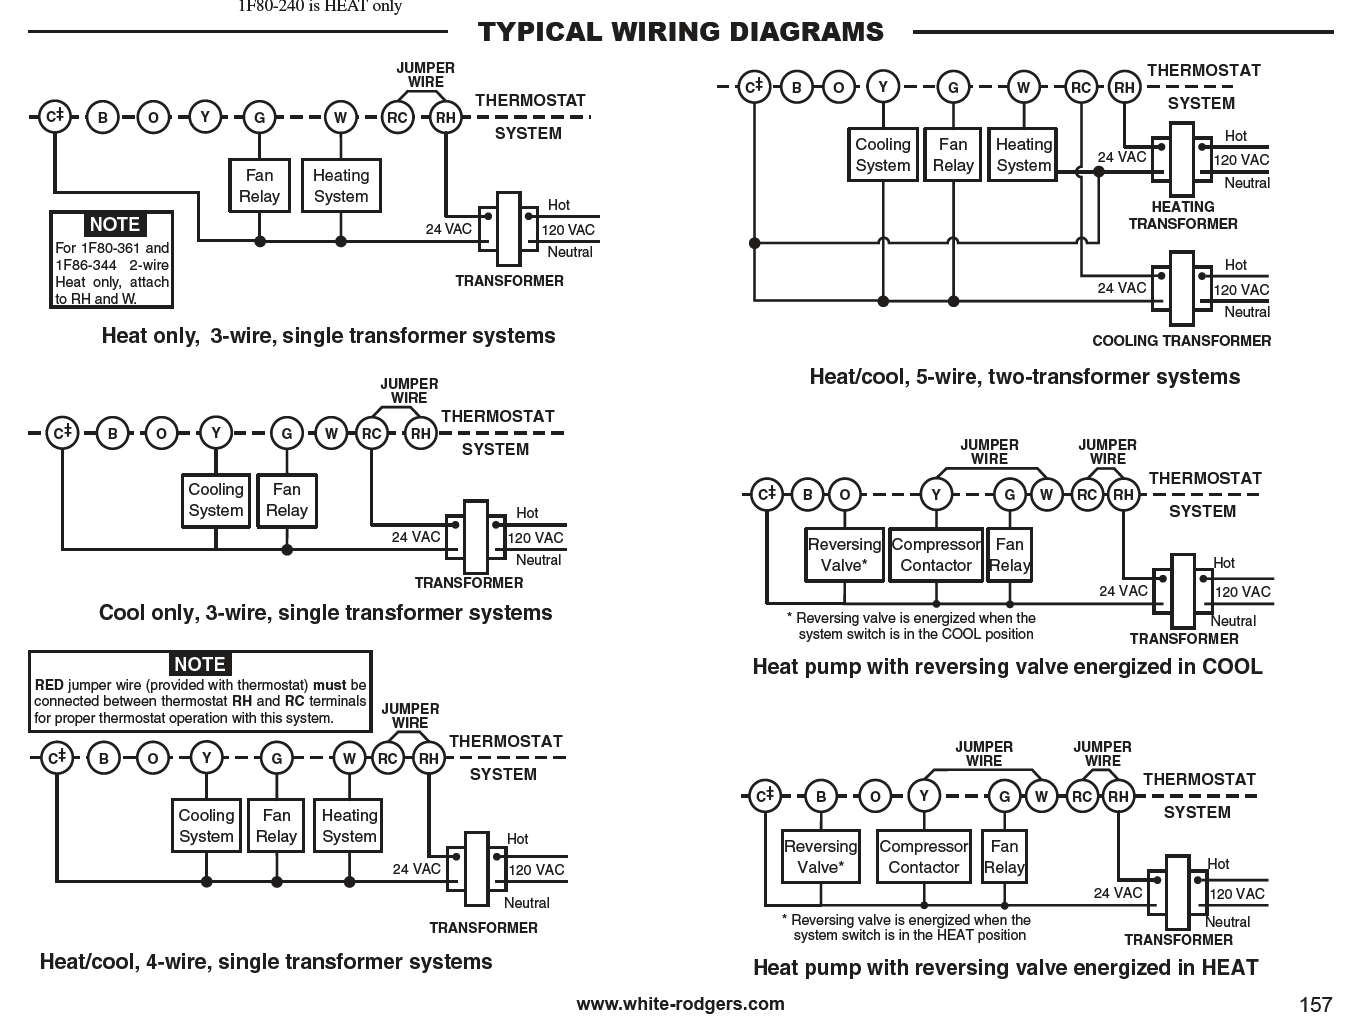 How wire a white rodgers room thermostat white rodgers thermostat emerson white rodgers 1f80 series thermostats typical wiring diagrams at inspectapedia cited in detail swarovskicordoba Choice Image